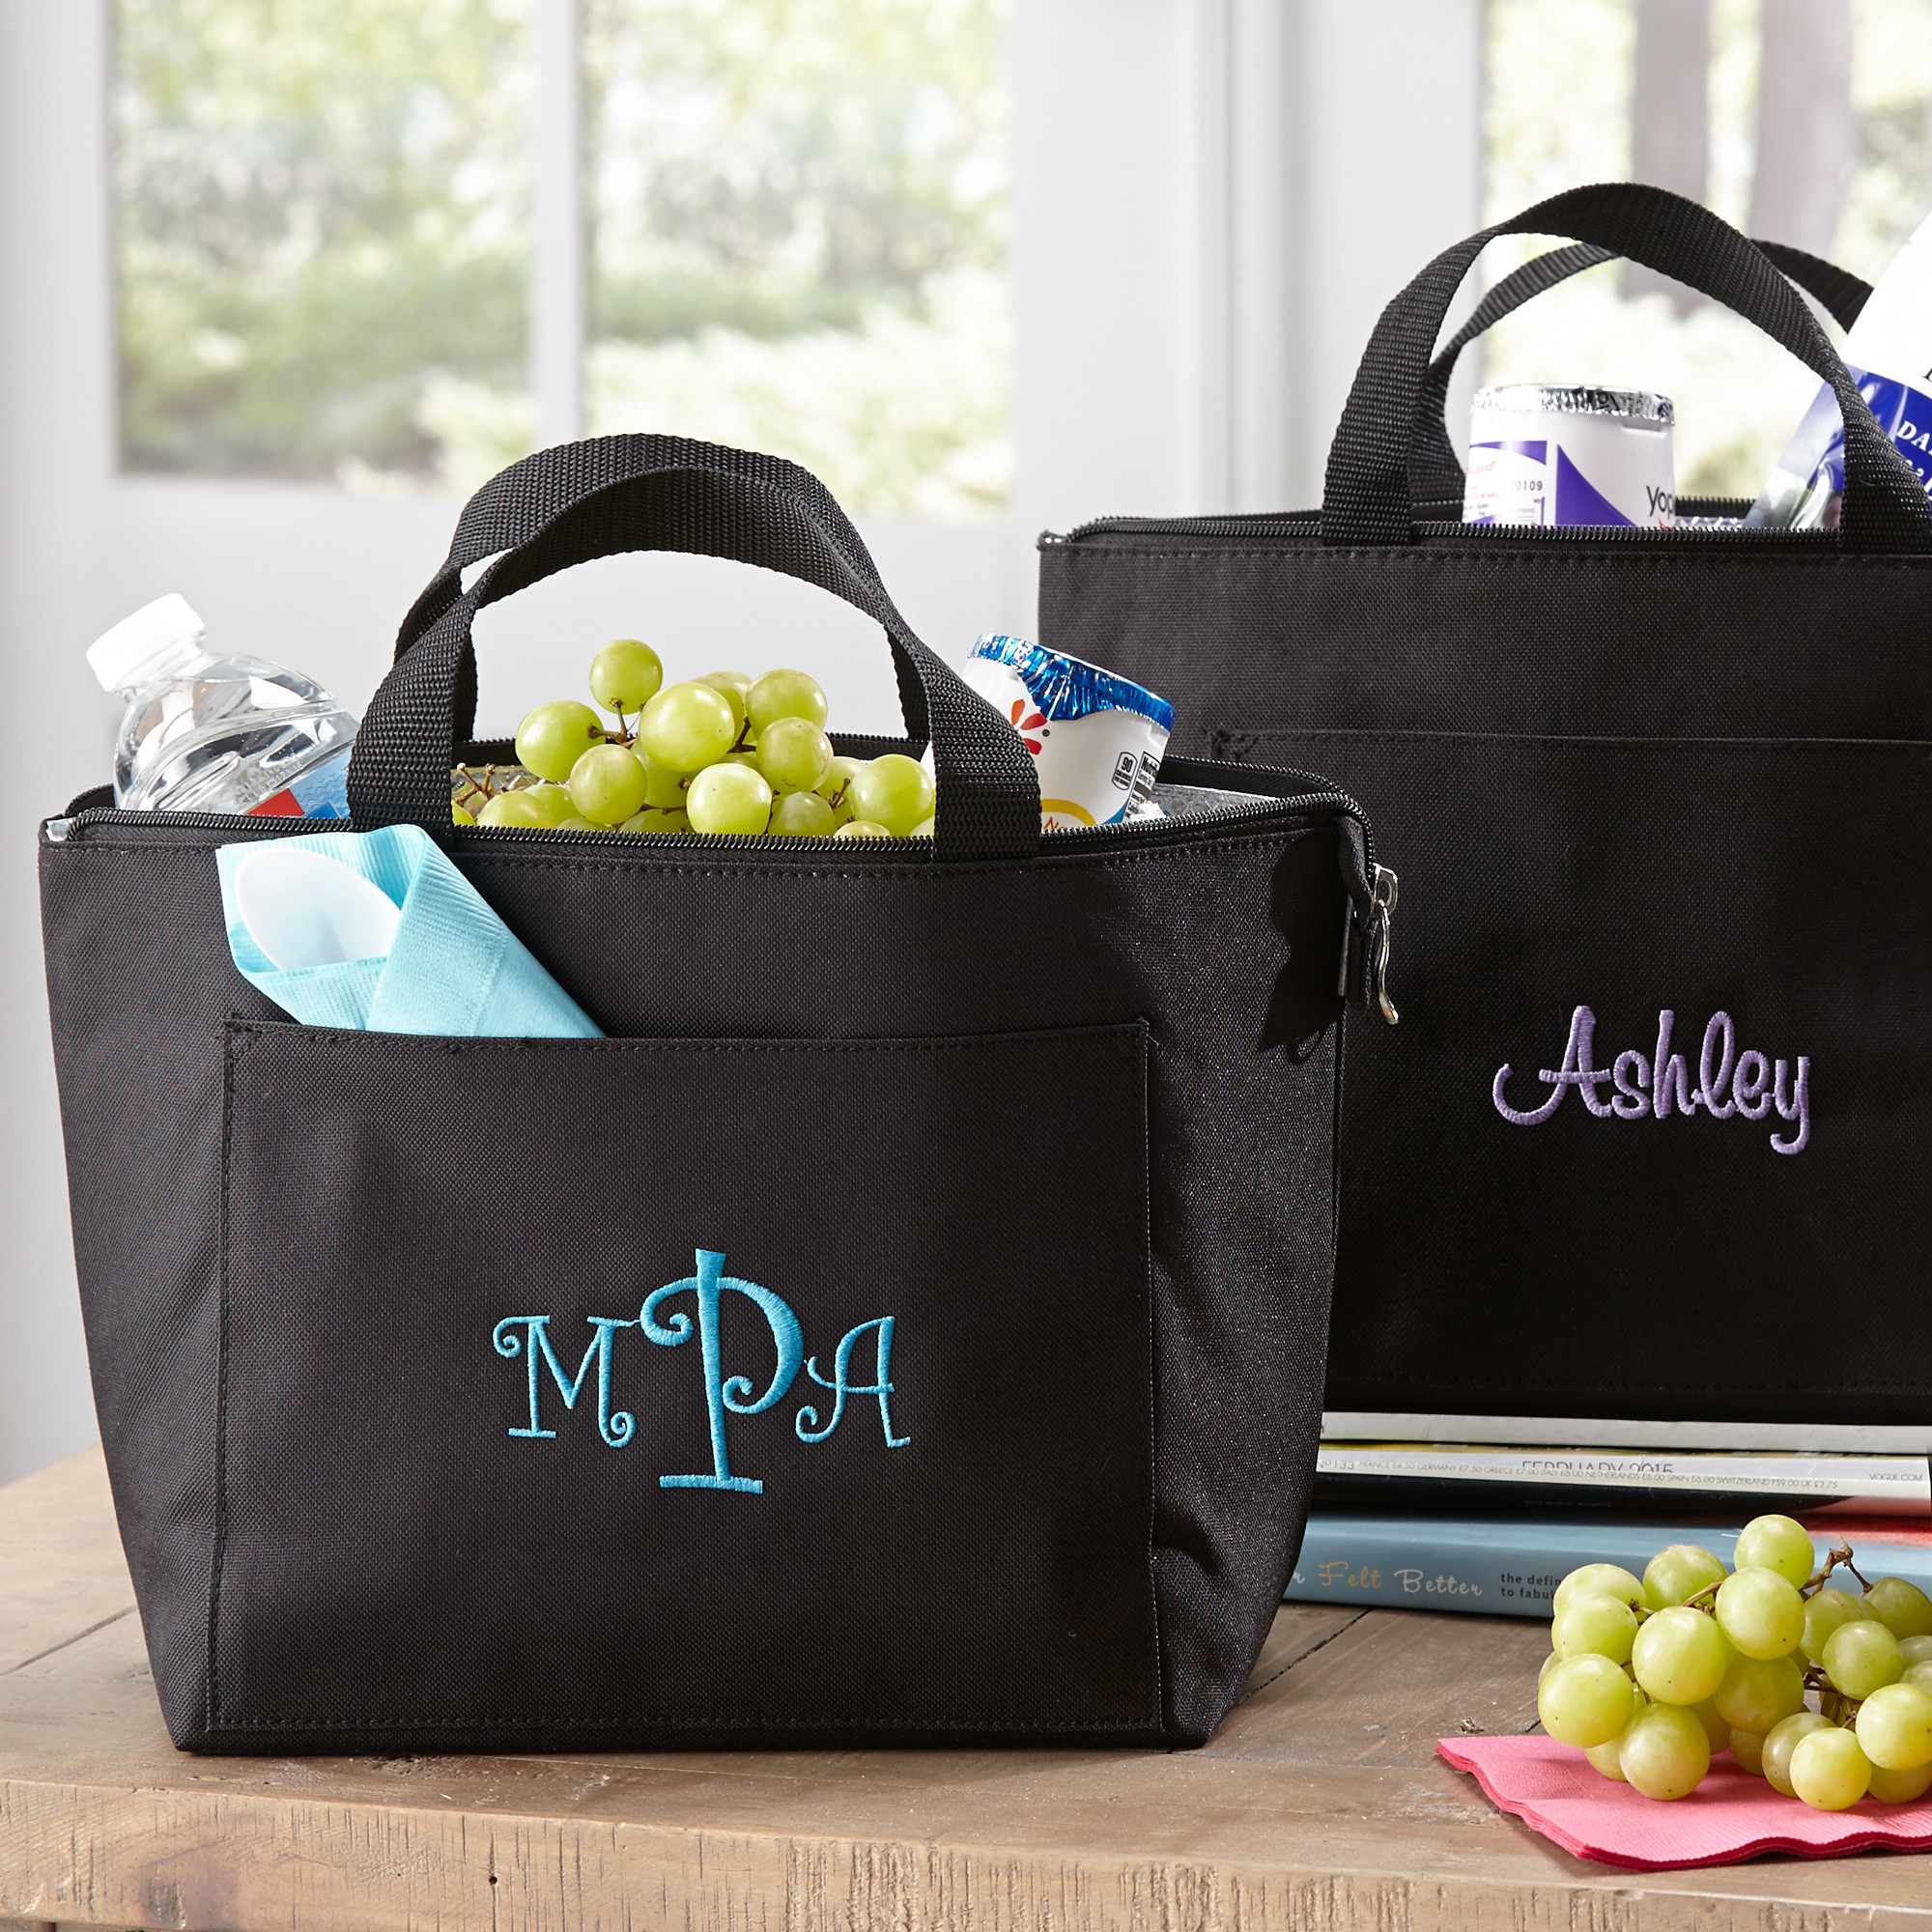 Personalized Totes | Beach Bags | Bridesmaid Totes and Bags